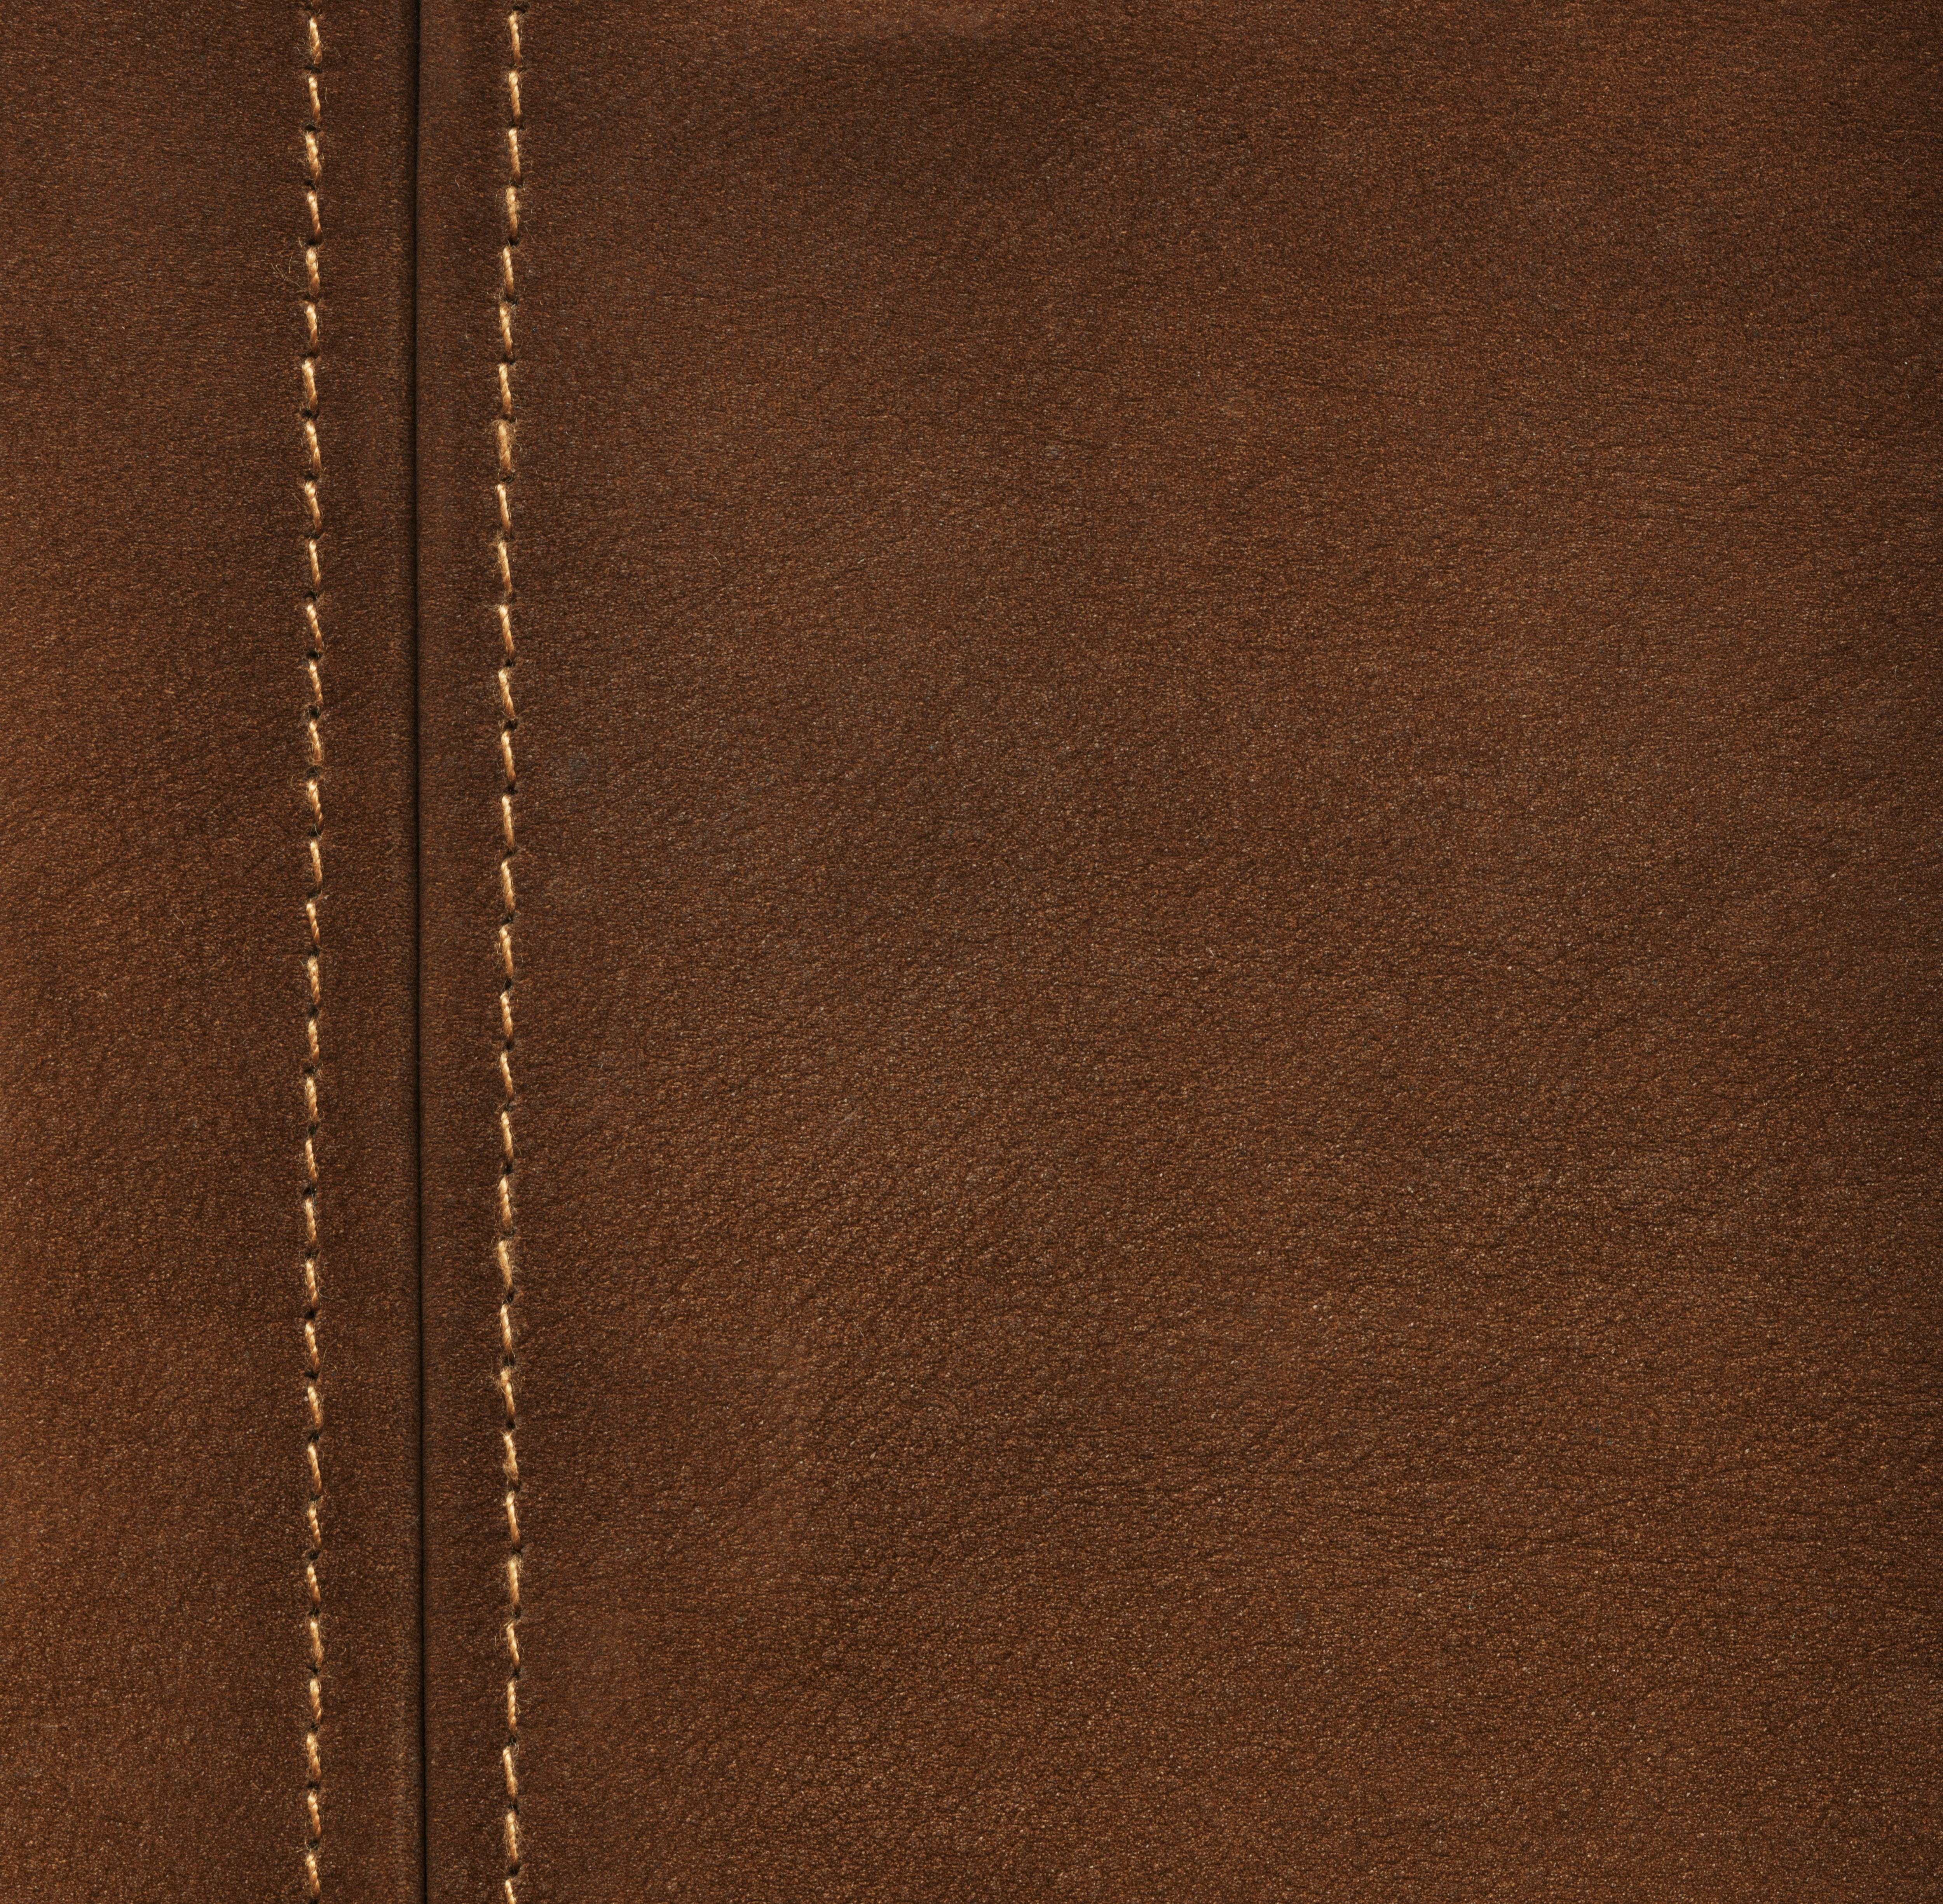 Download wallpaper leather, brown, leather, background, texture, stitch, thread, textures ...